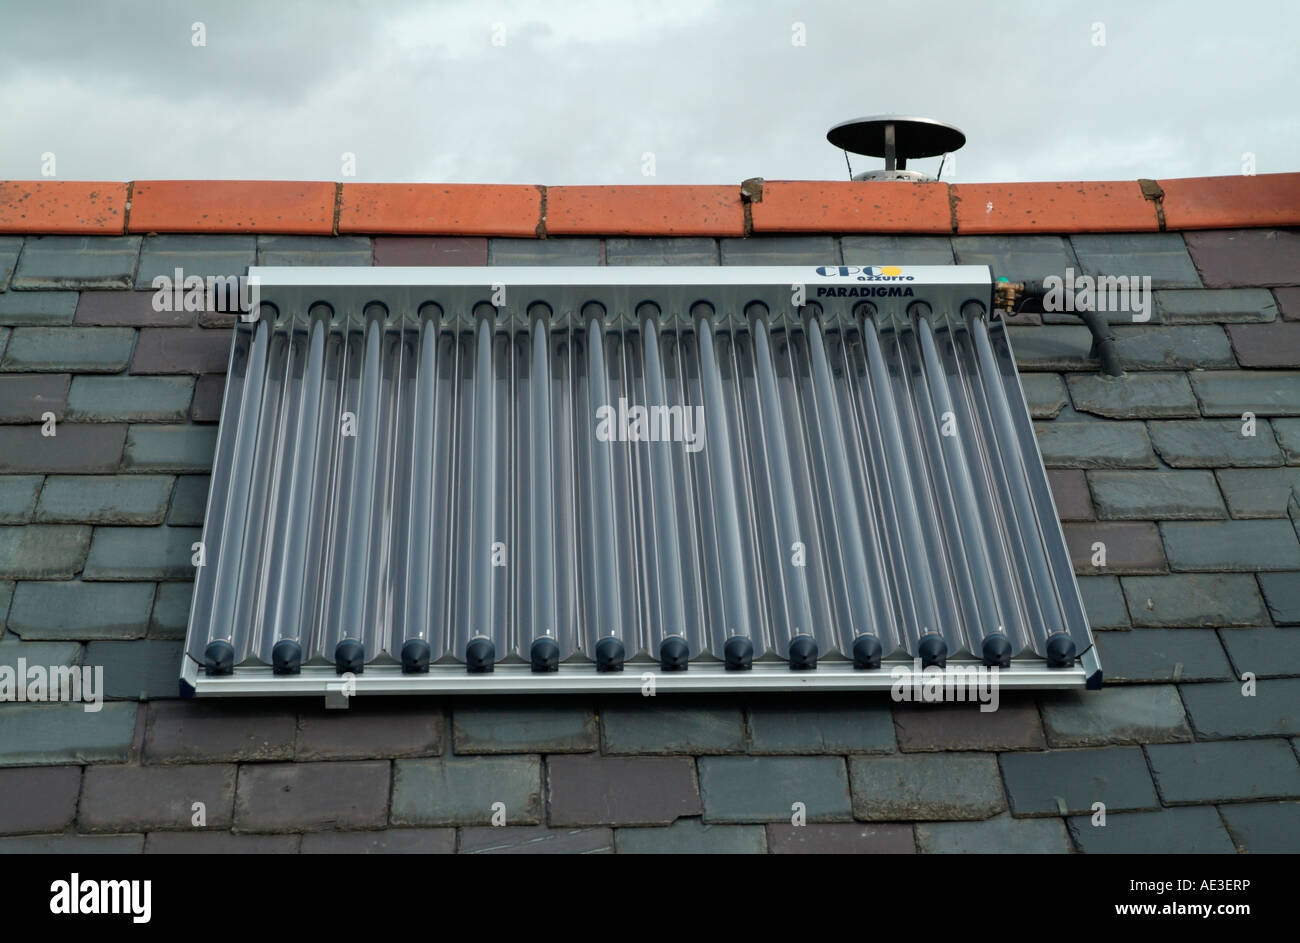 The CPC Azzuro Paradigma Solar Heating System on a roof - Stock Image